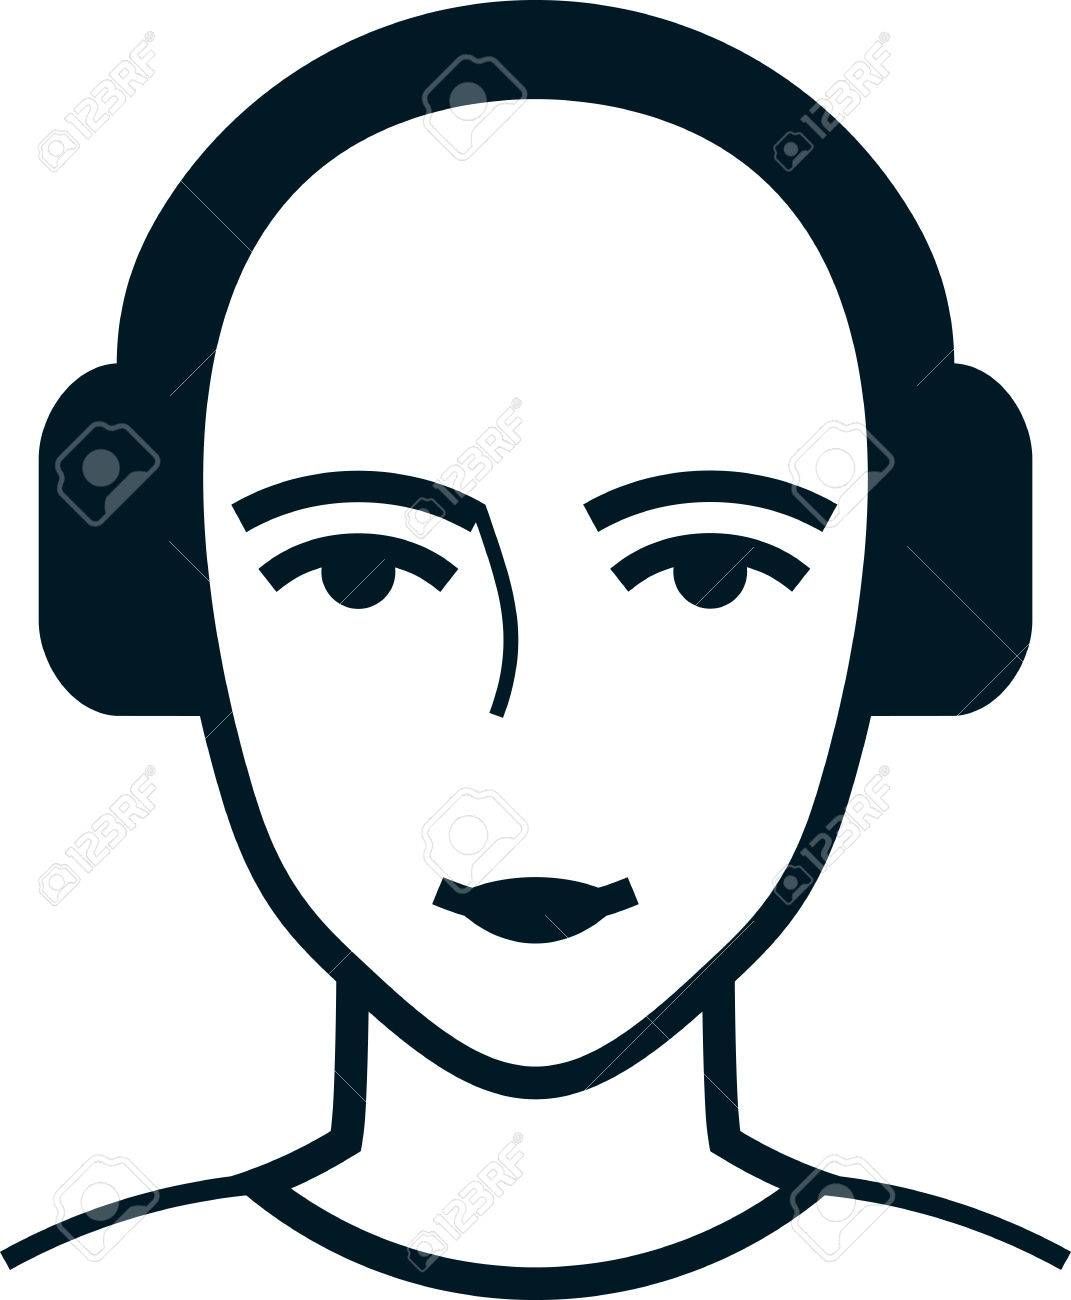 1071x1300 Head In Headphones Vector Simple Illustration Drawing Isolated